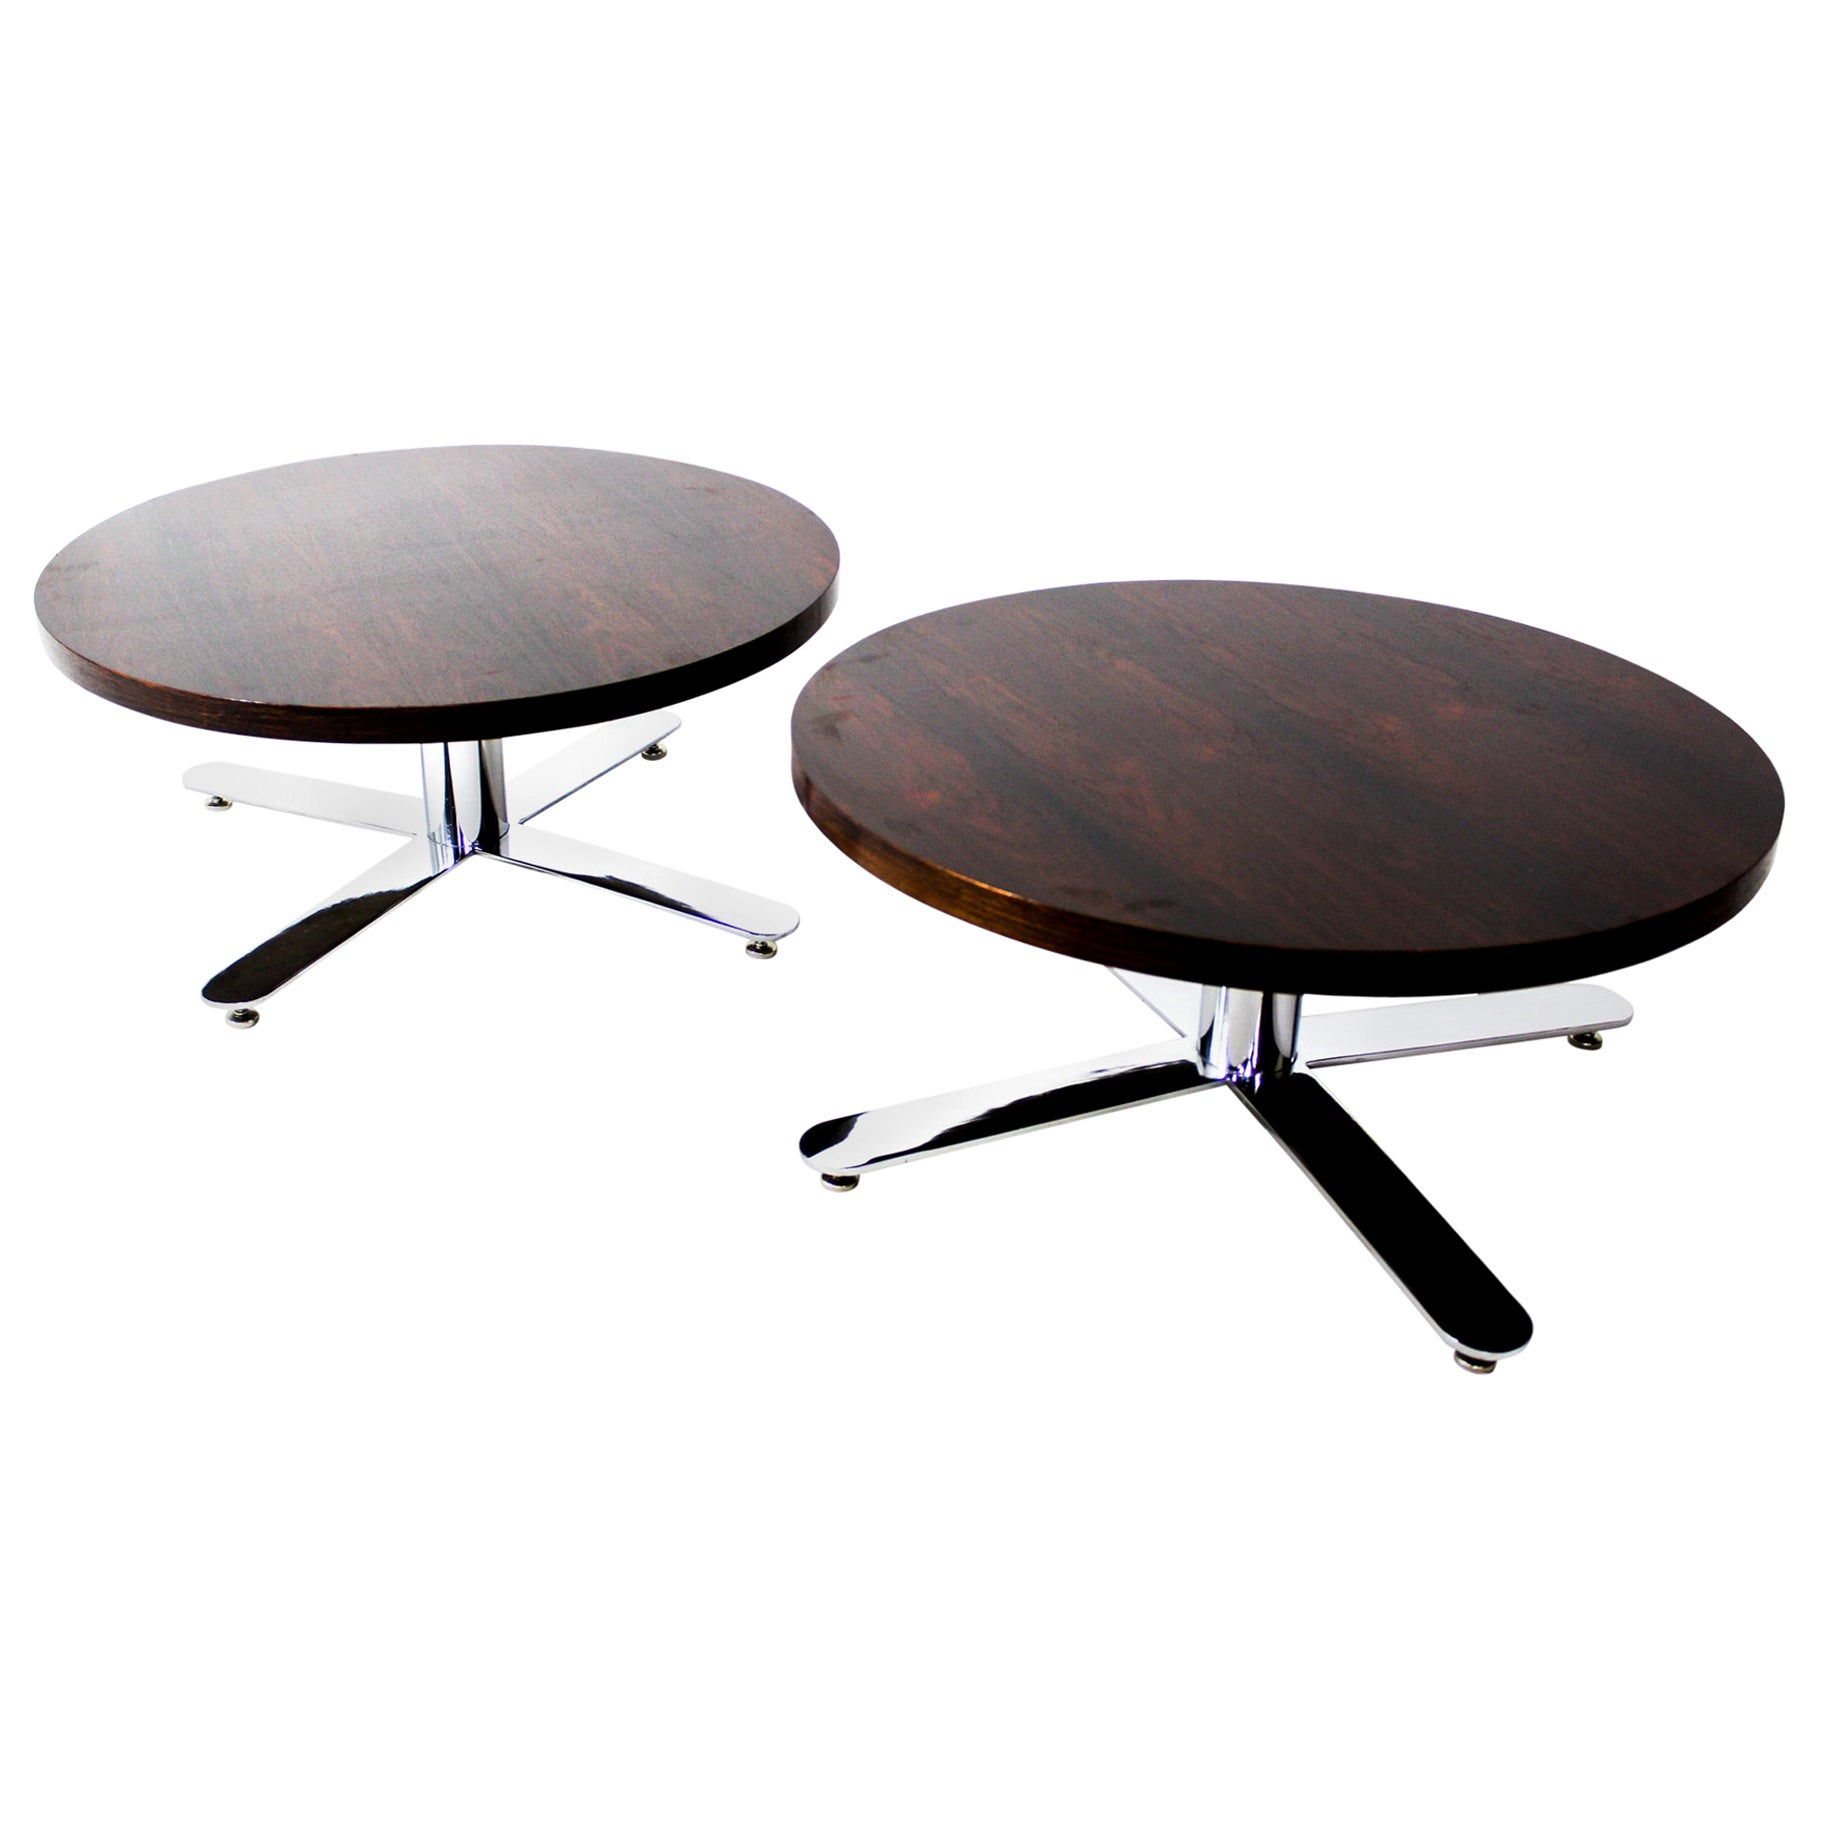 Mid-Century Modern Pair of Wood Coffee Tables, Brazil, 1960s